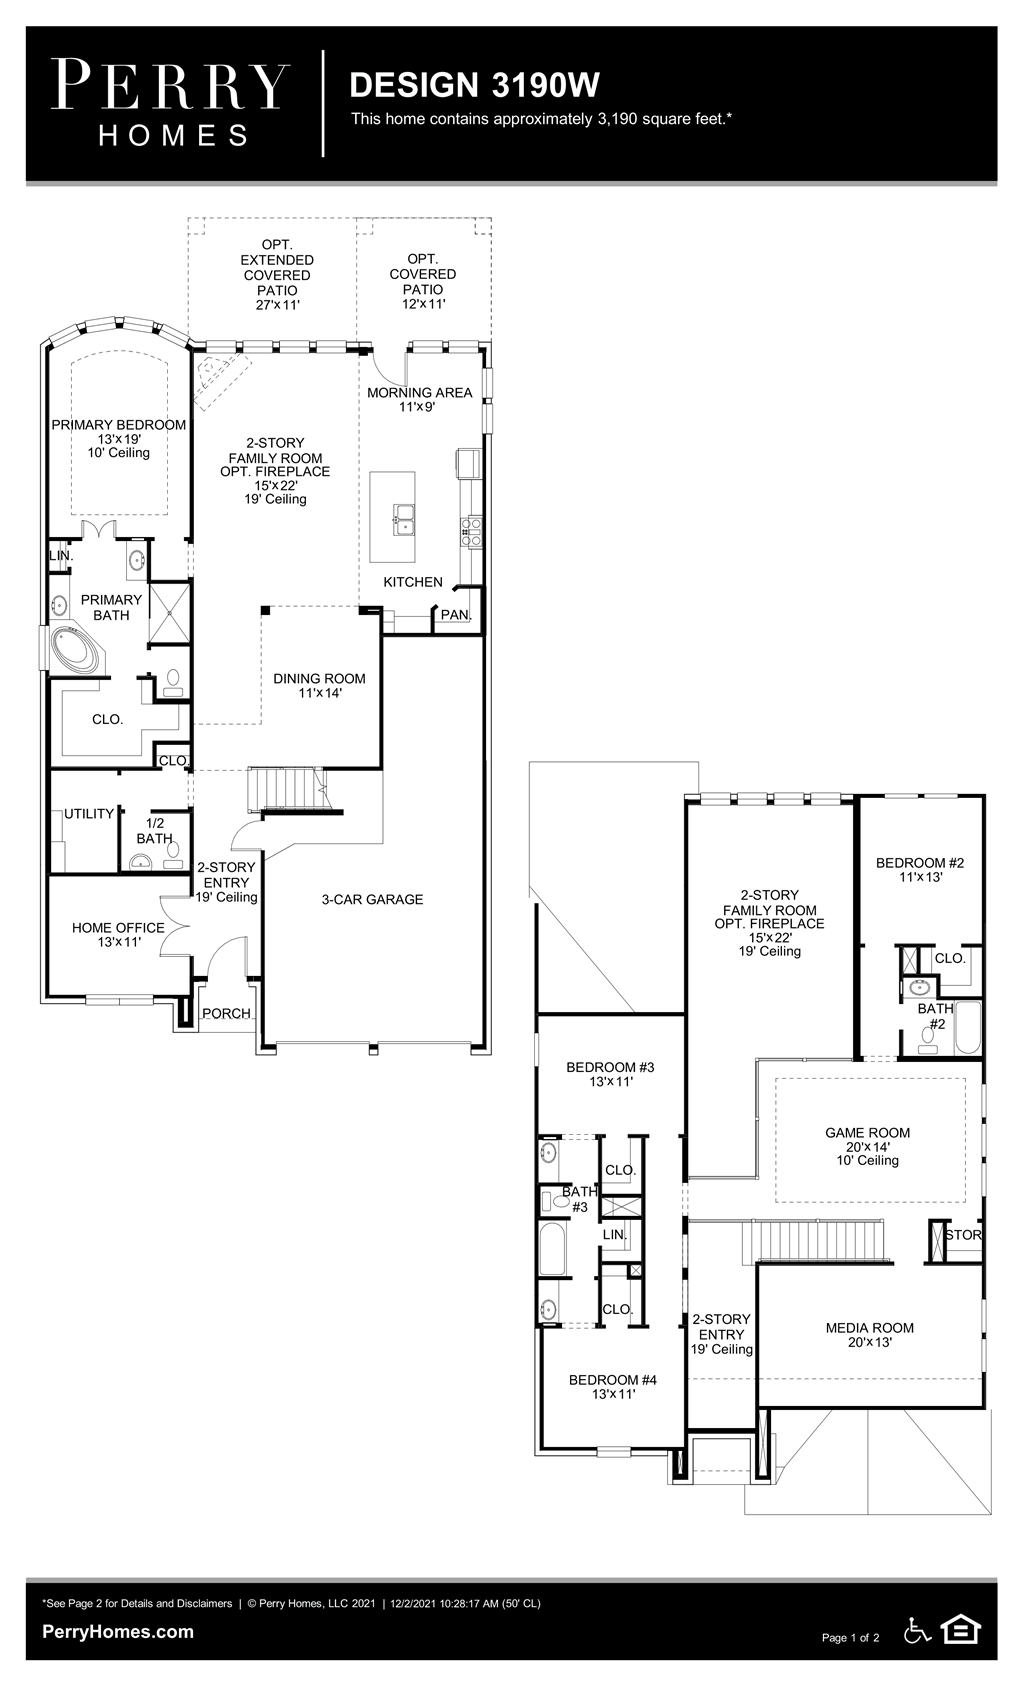 Floor Plan for 3190W